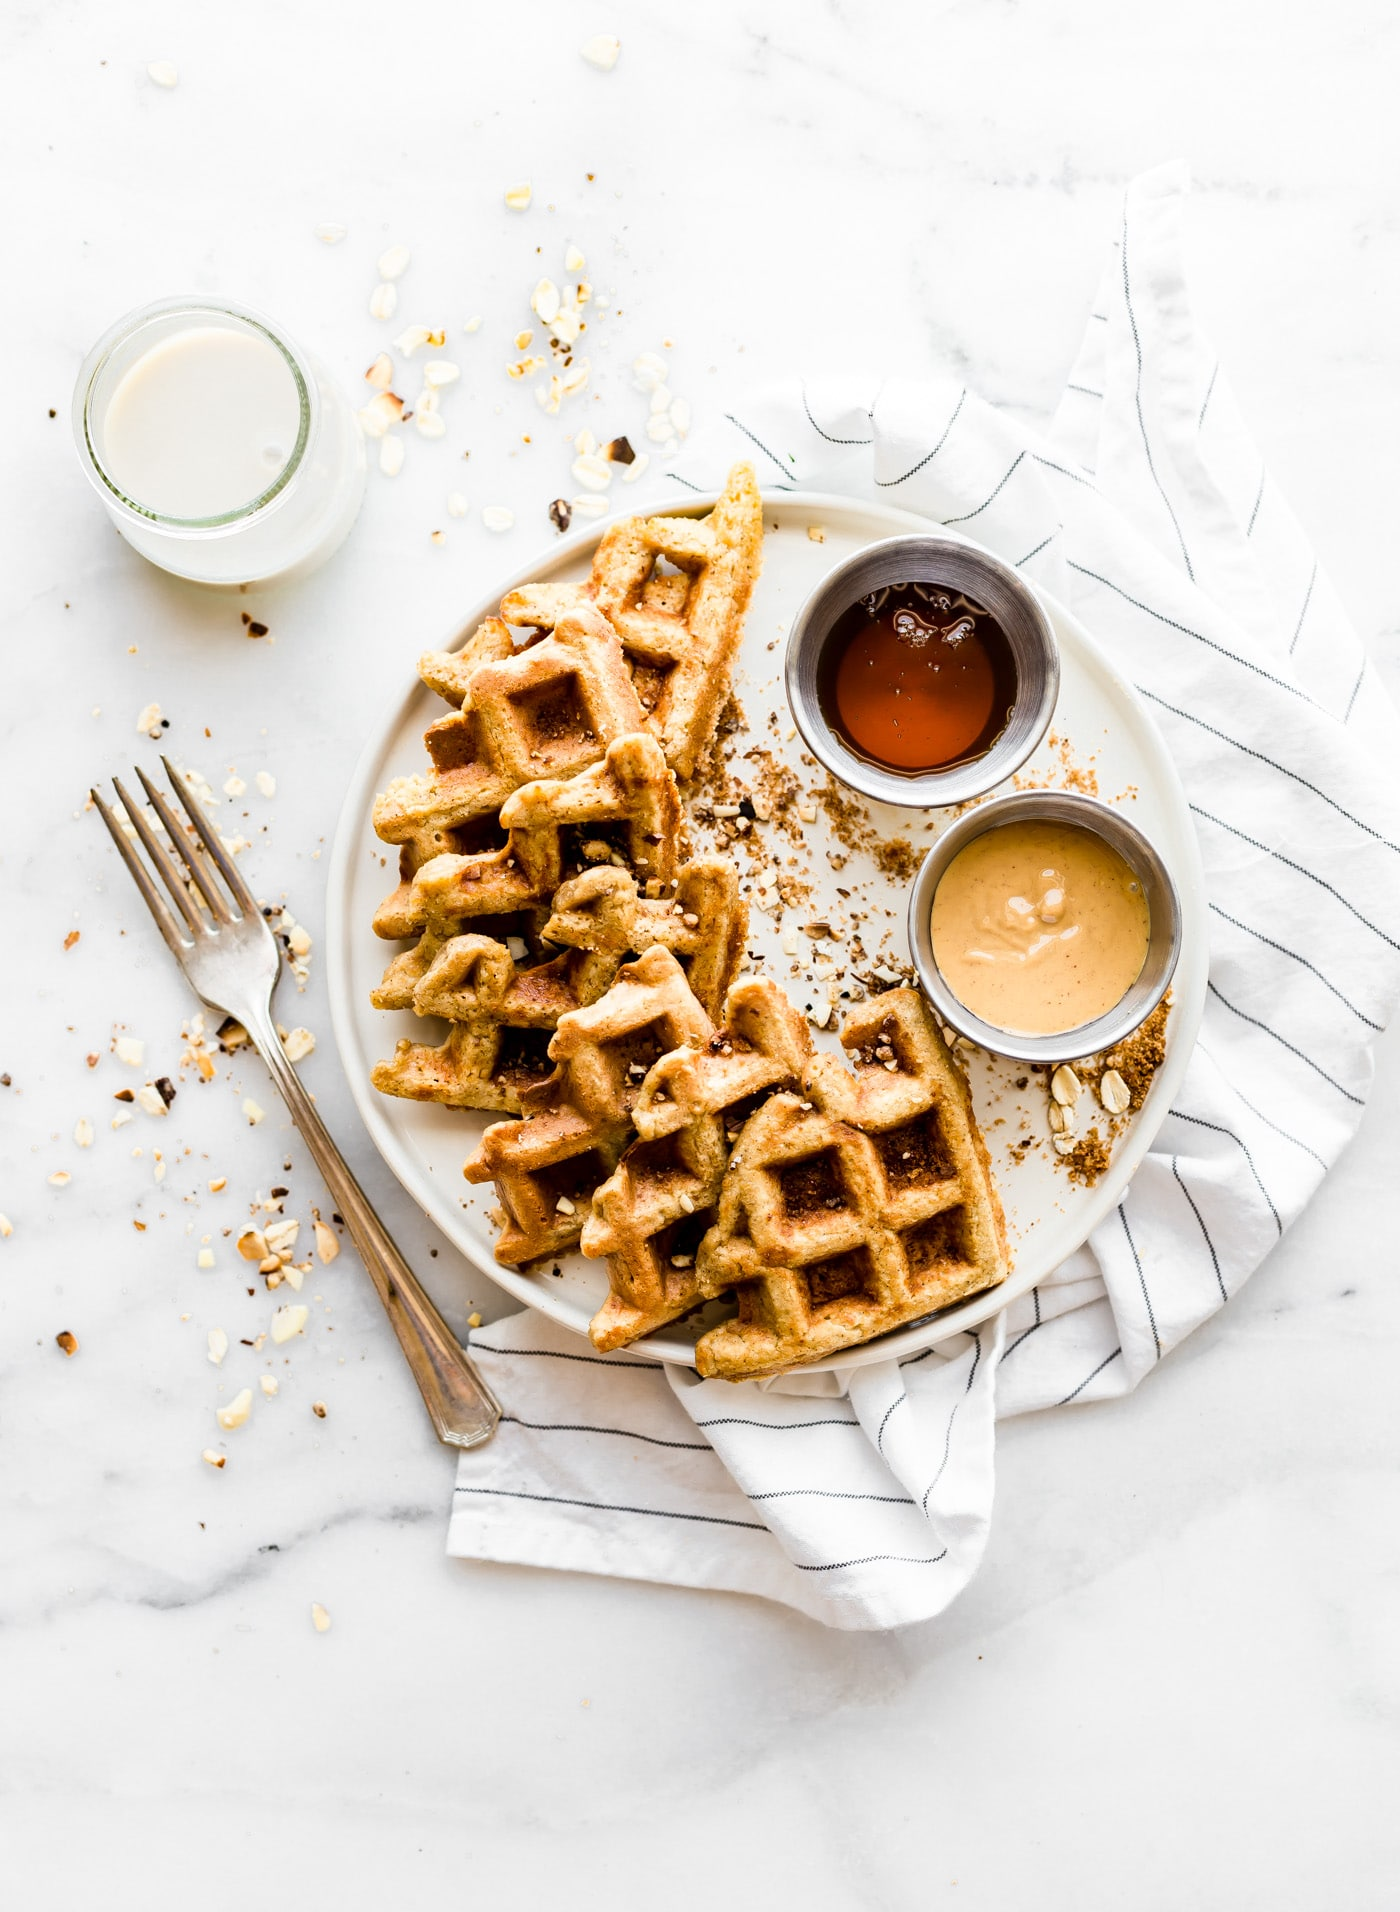 Flourless Peanut Butter Waffles are not only easy to make, but also protein rich! All you need are a few healthy ingredients and they turn out light, fluffy, dairy free, and delicious! Freezable for breakfast meal prep or on simple grab and go! Truly one of our favorite waffle recipes!